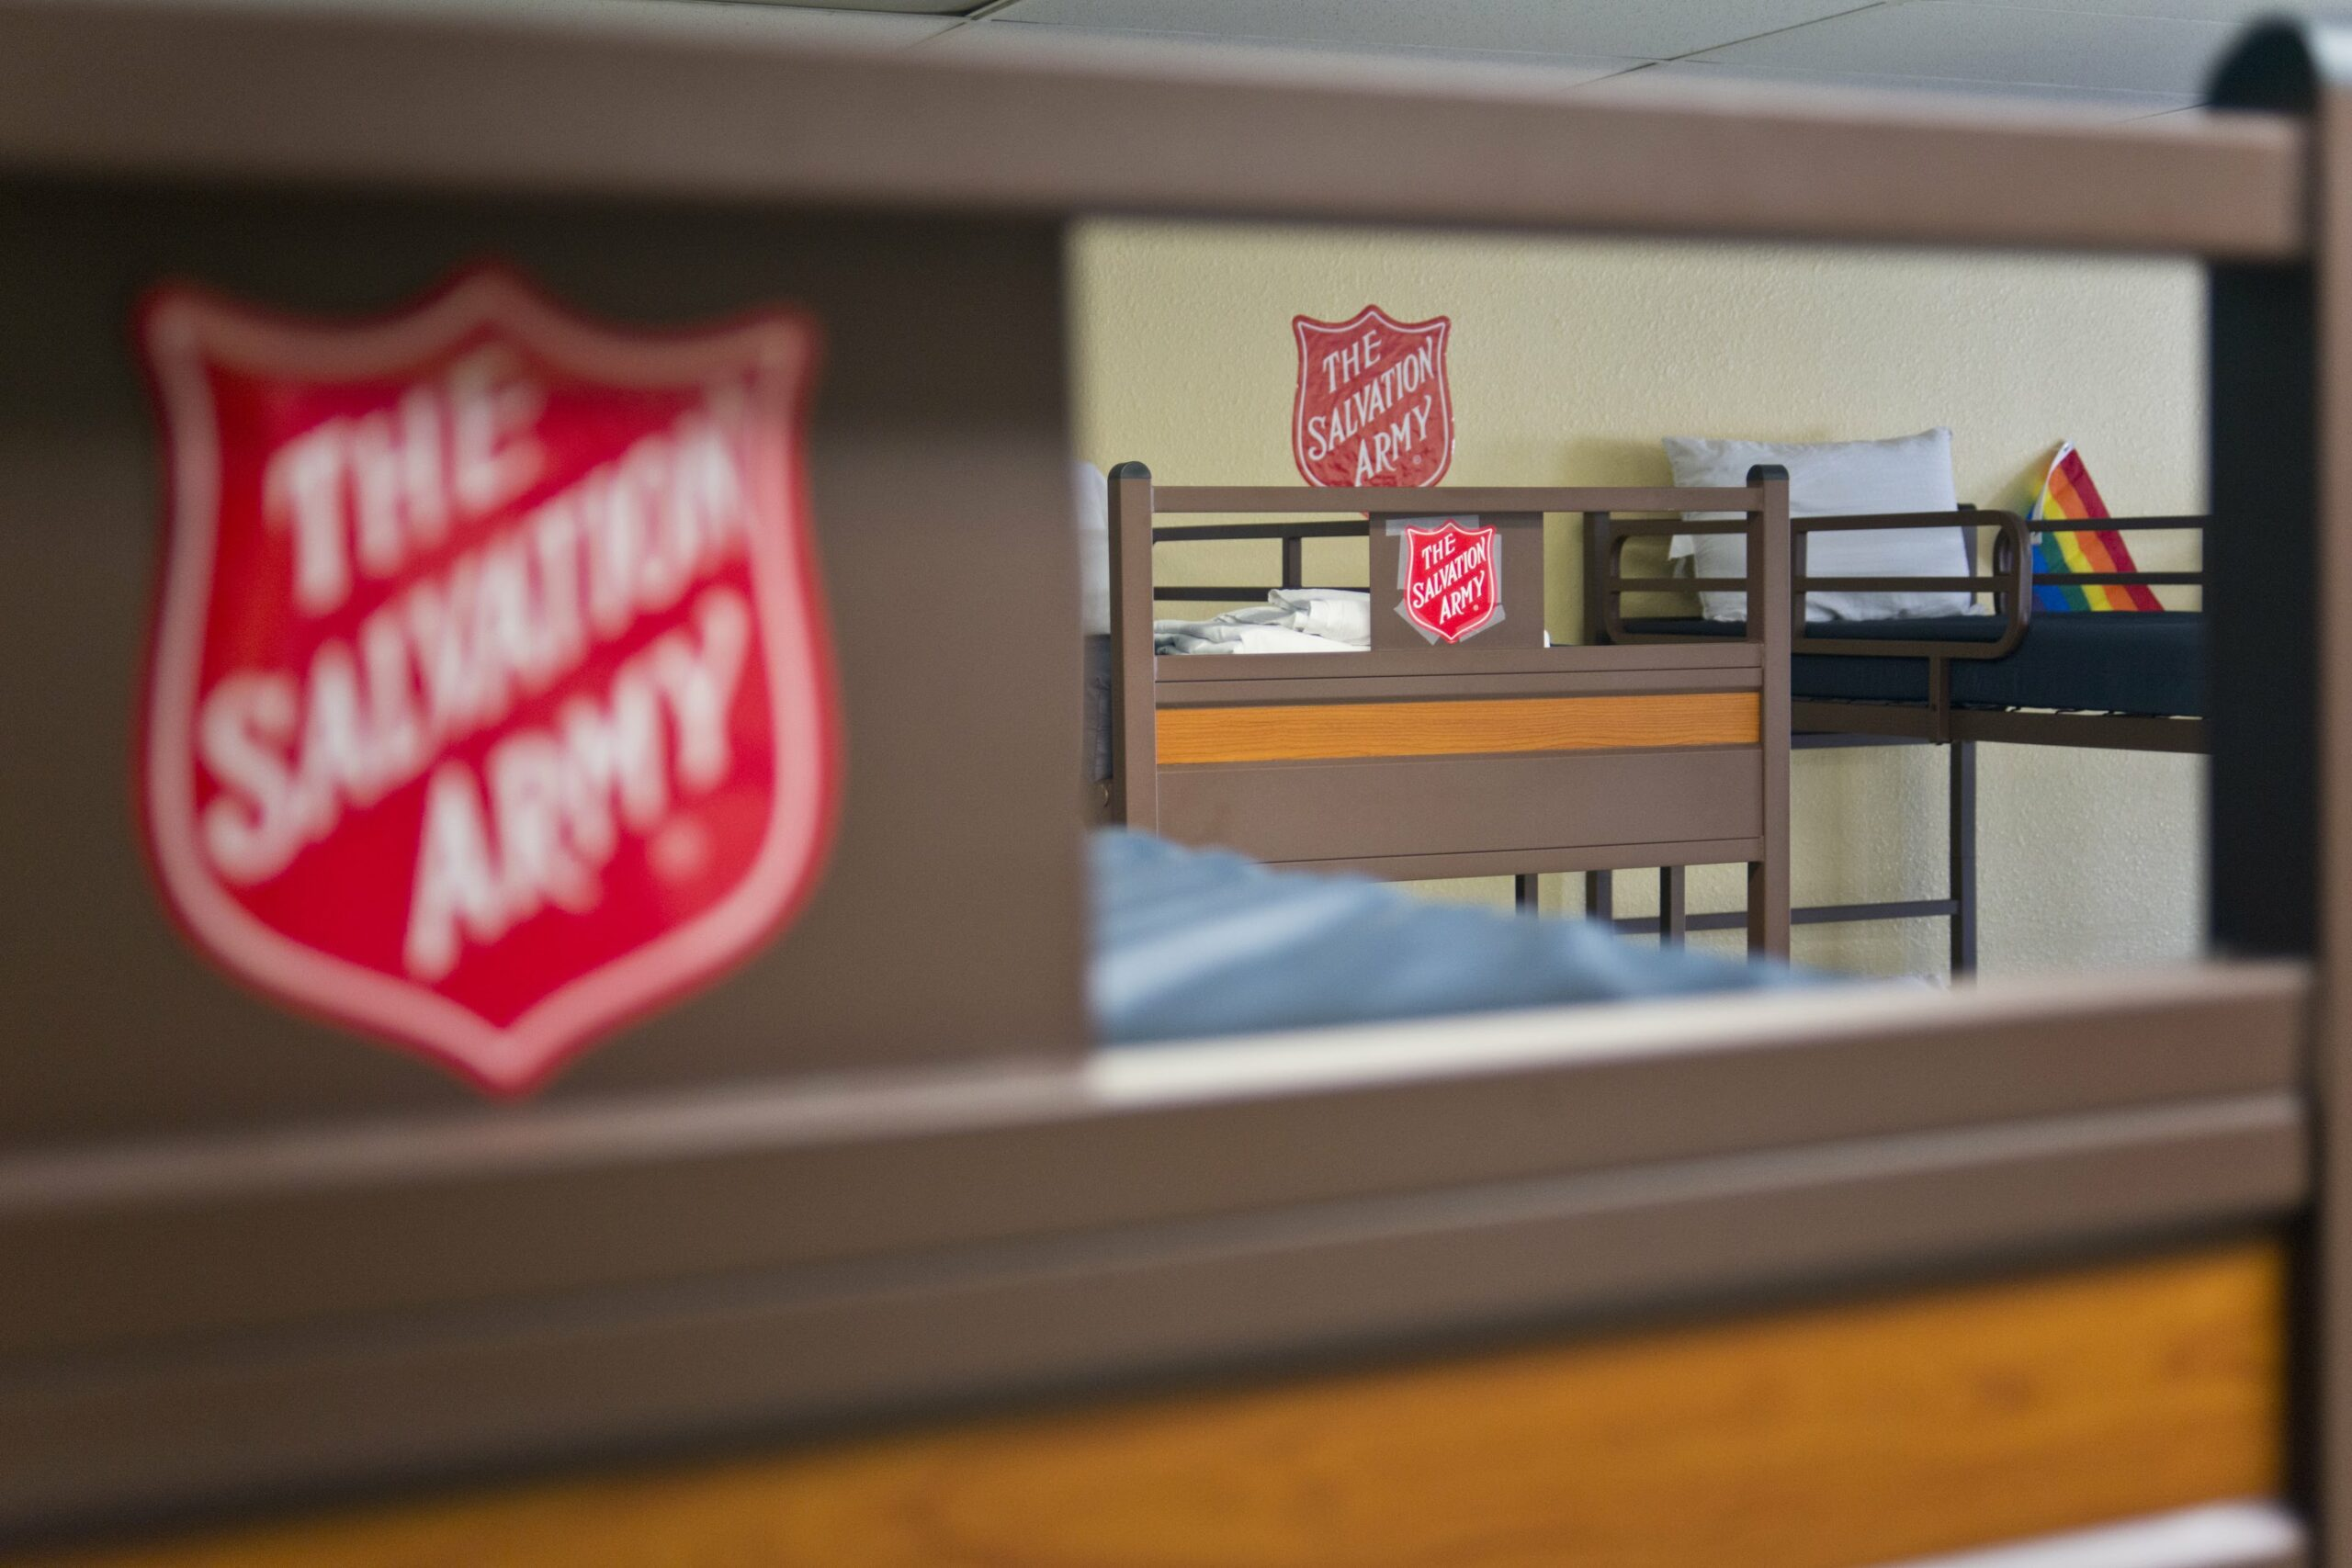 Salvation Army shield on bunk beds in the safety dorm